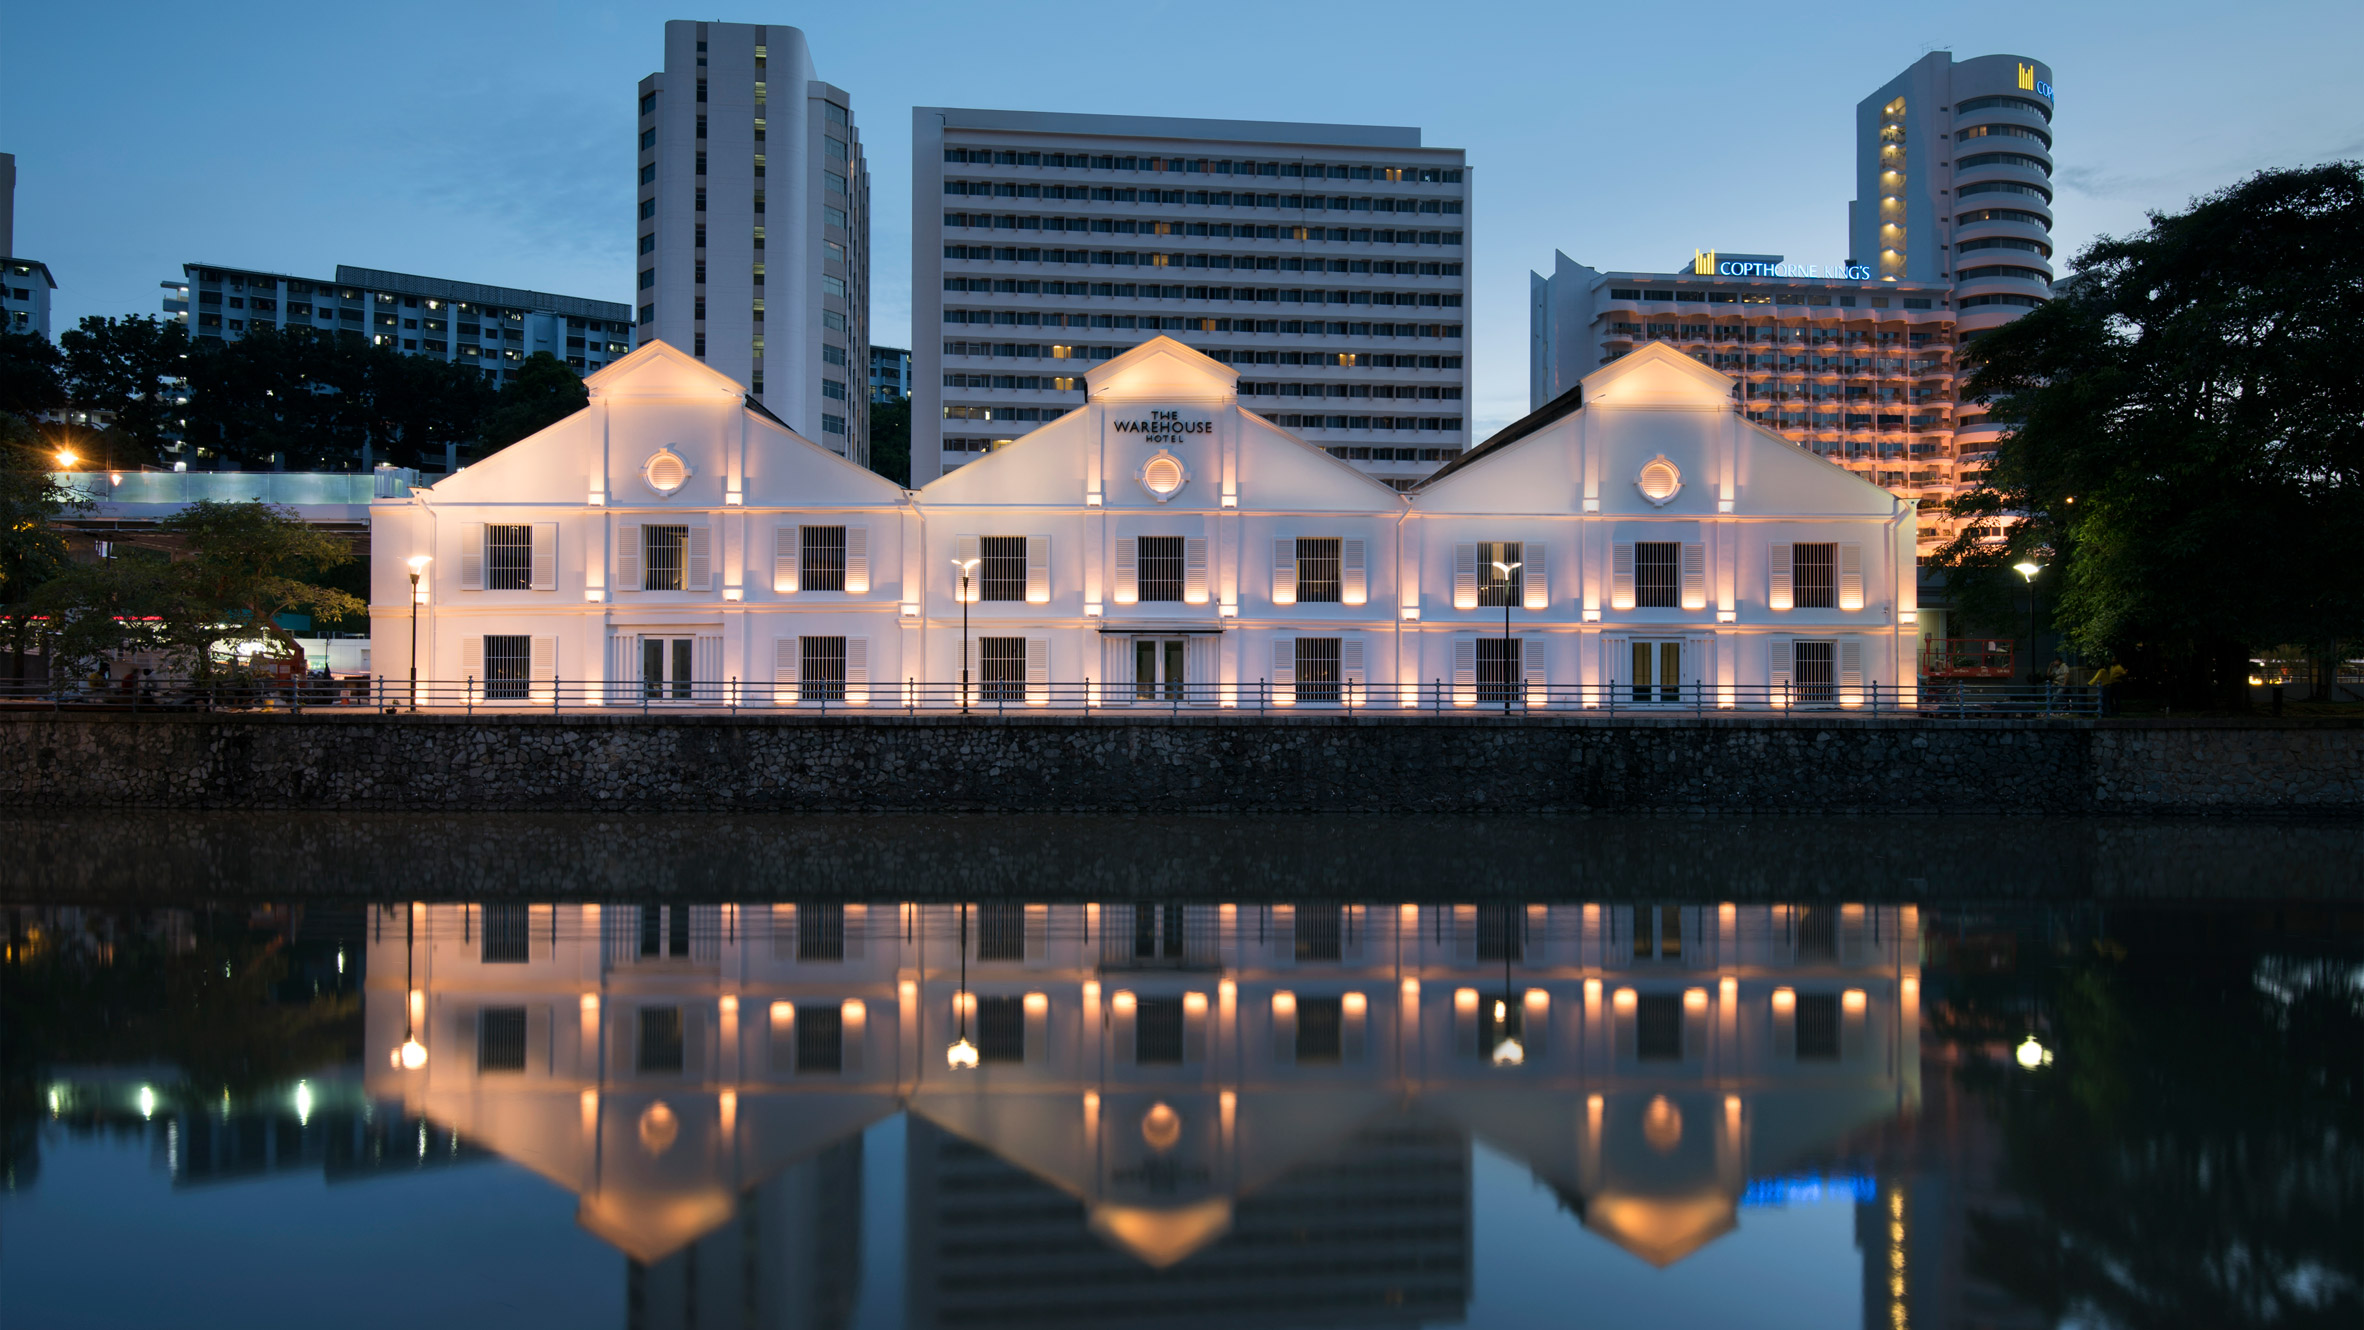 the-warehouse-hotel-asylum-singapore-architecture_dezeen_2364_herob.jpg